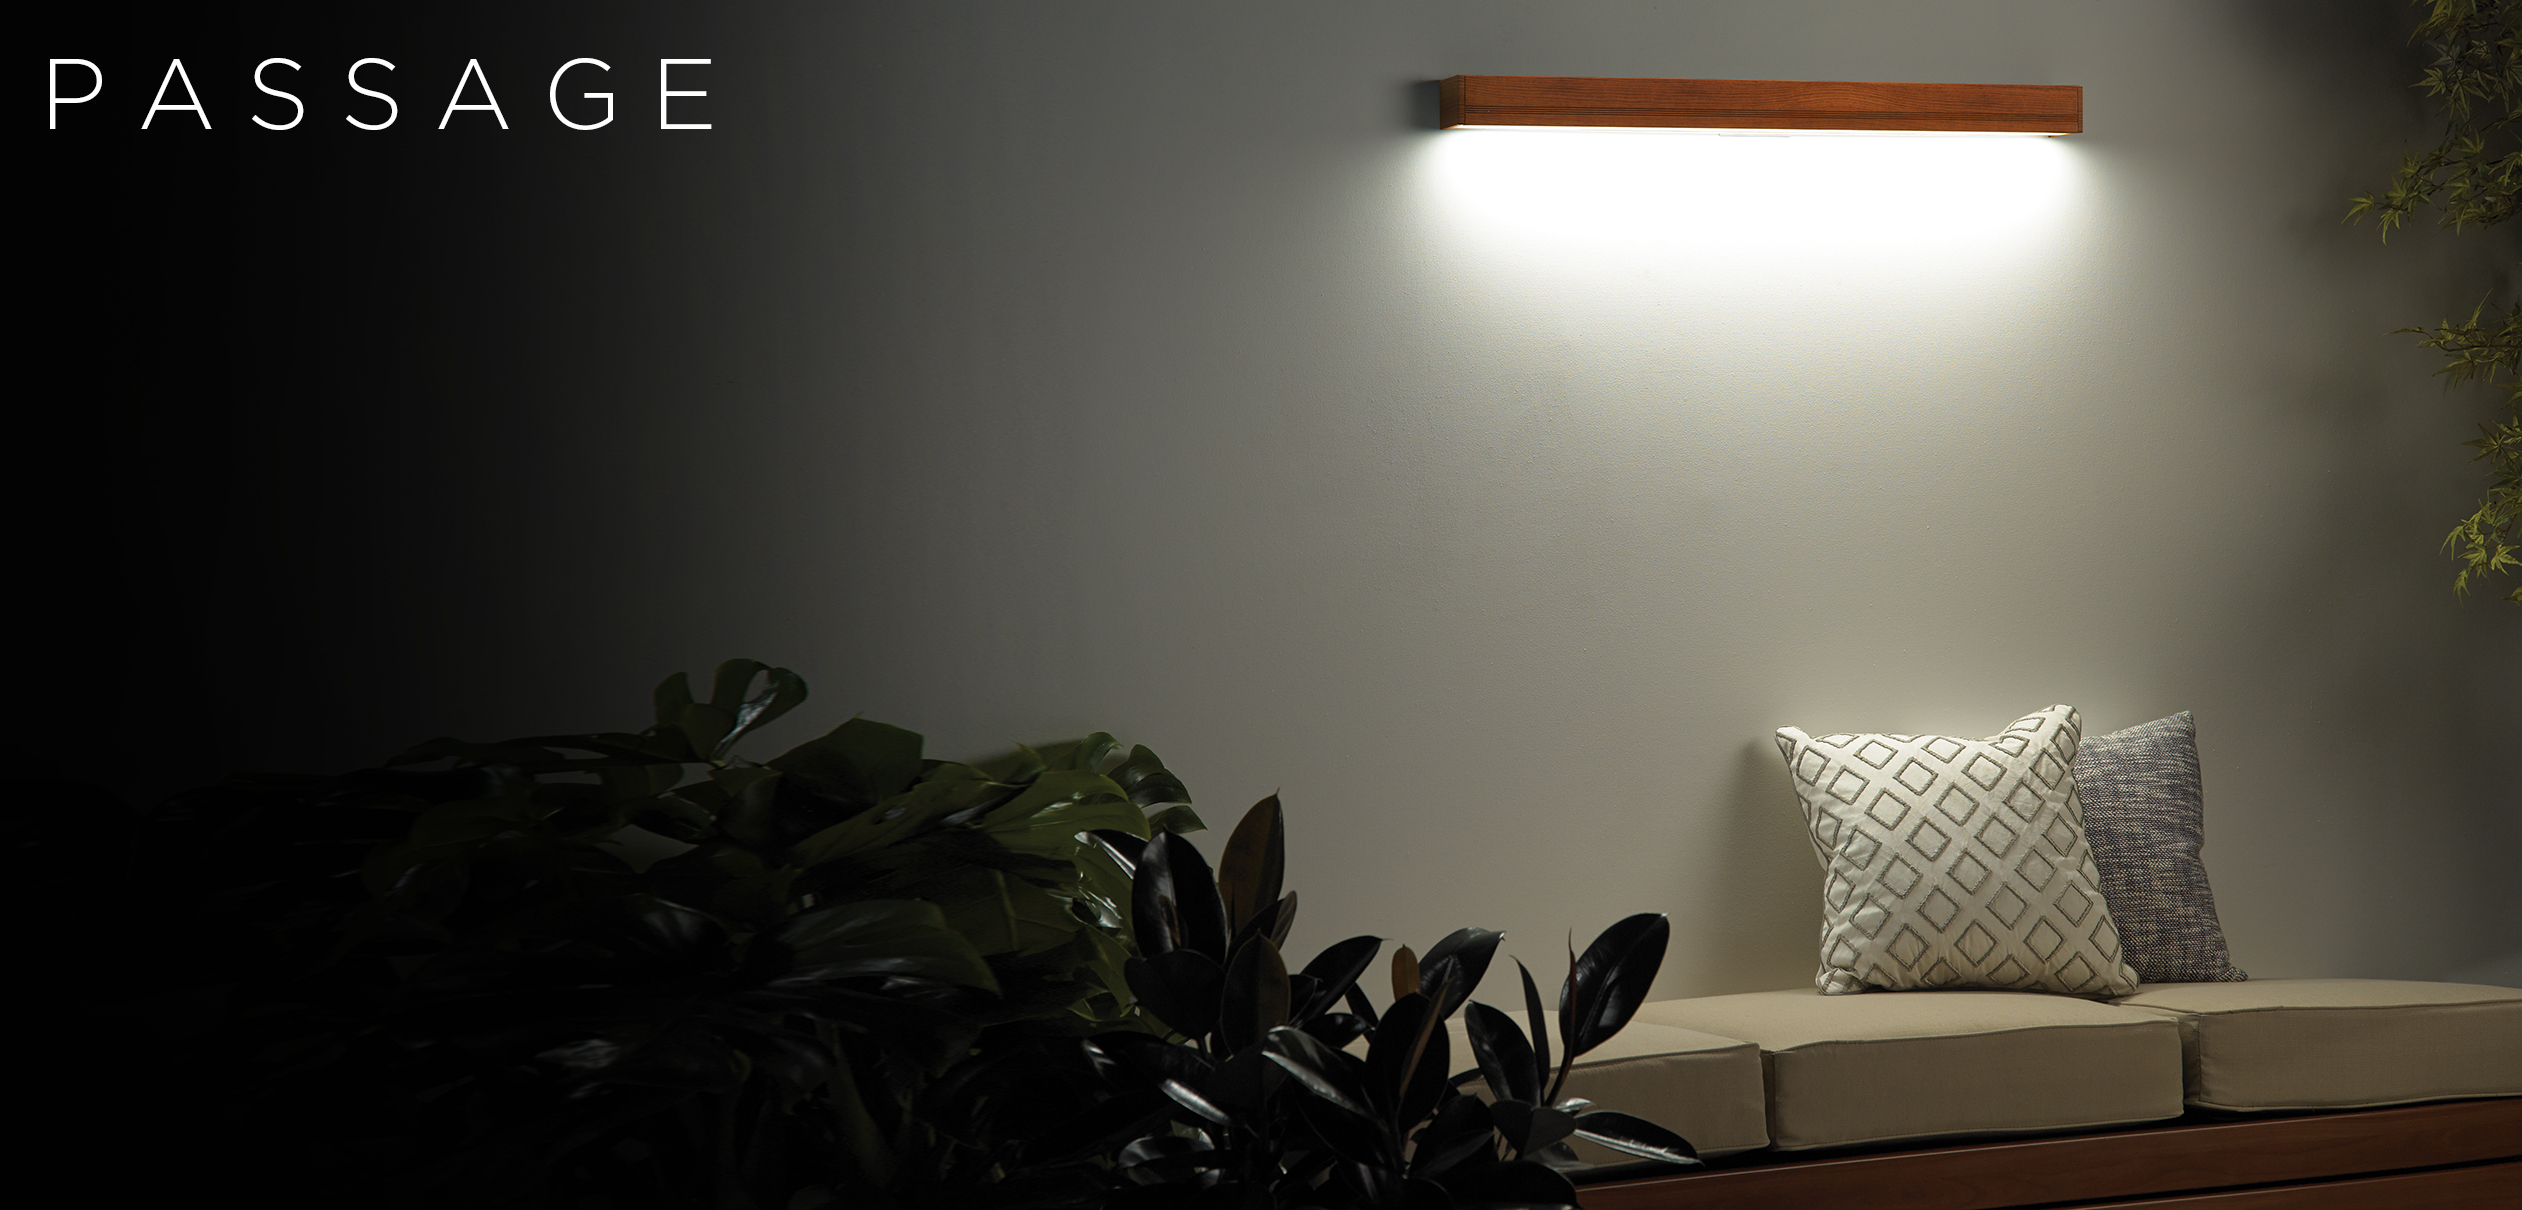 Passage wood linear sconce architectural lighting in an outdoor setting